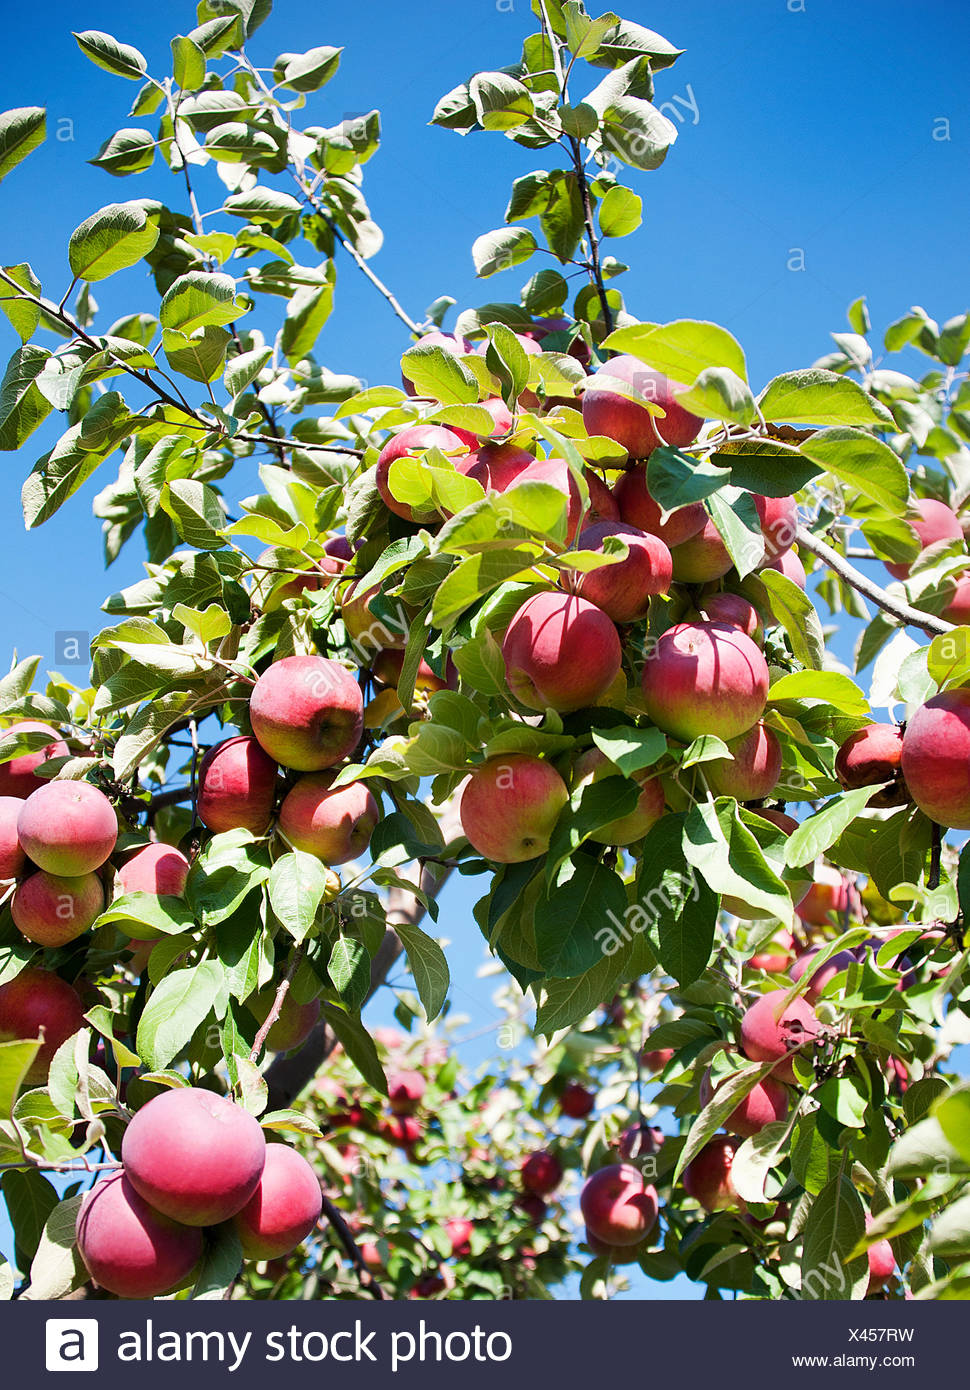 Apple tree with fruit Stock Photo